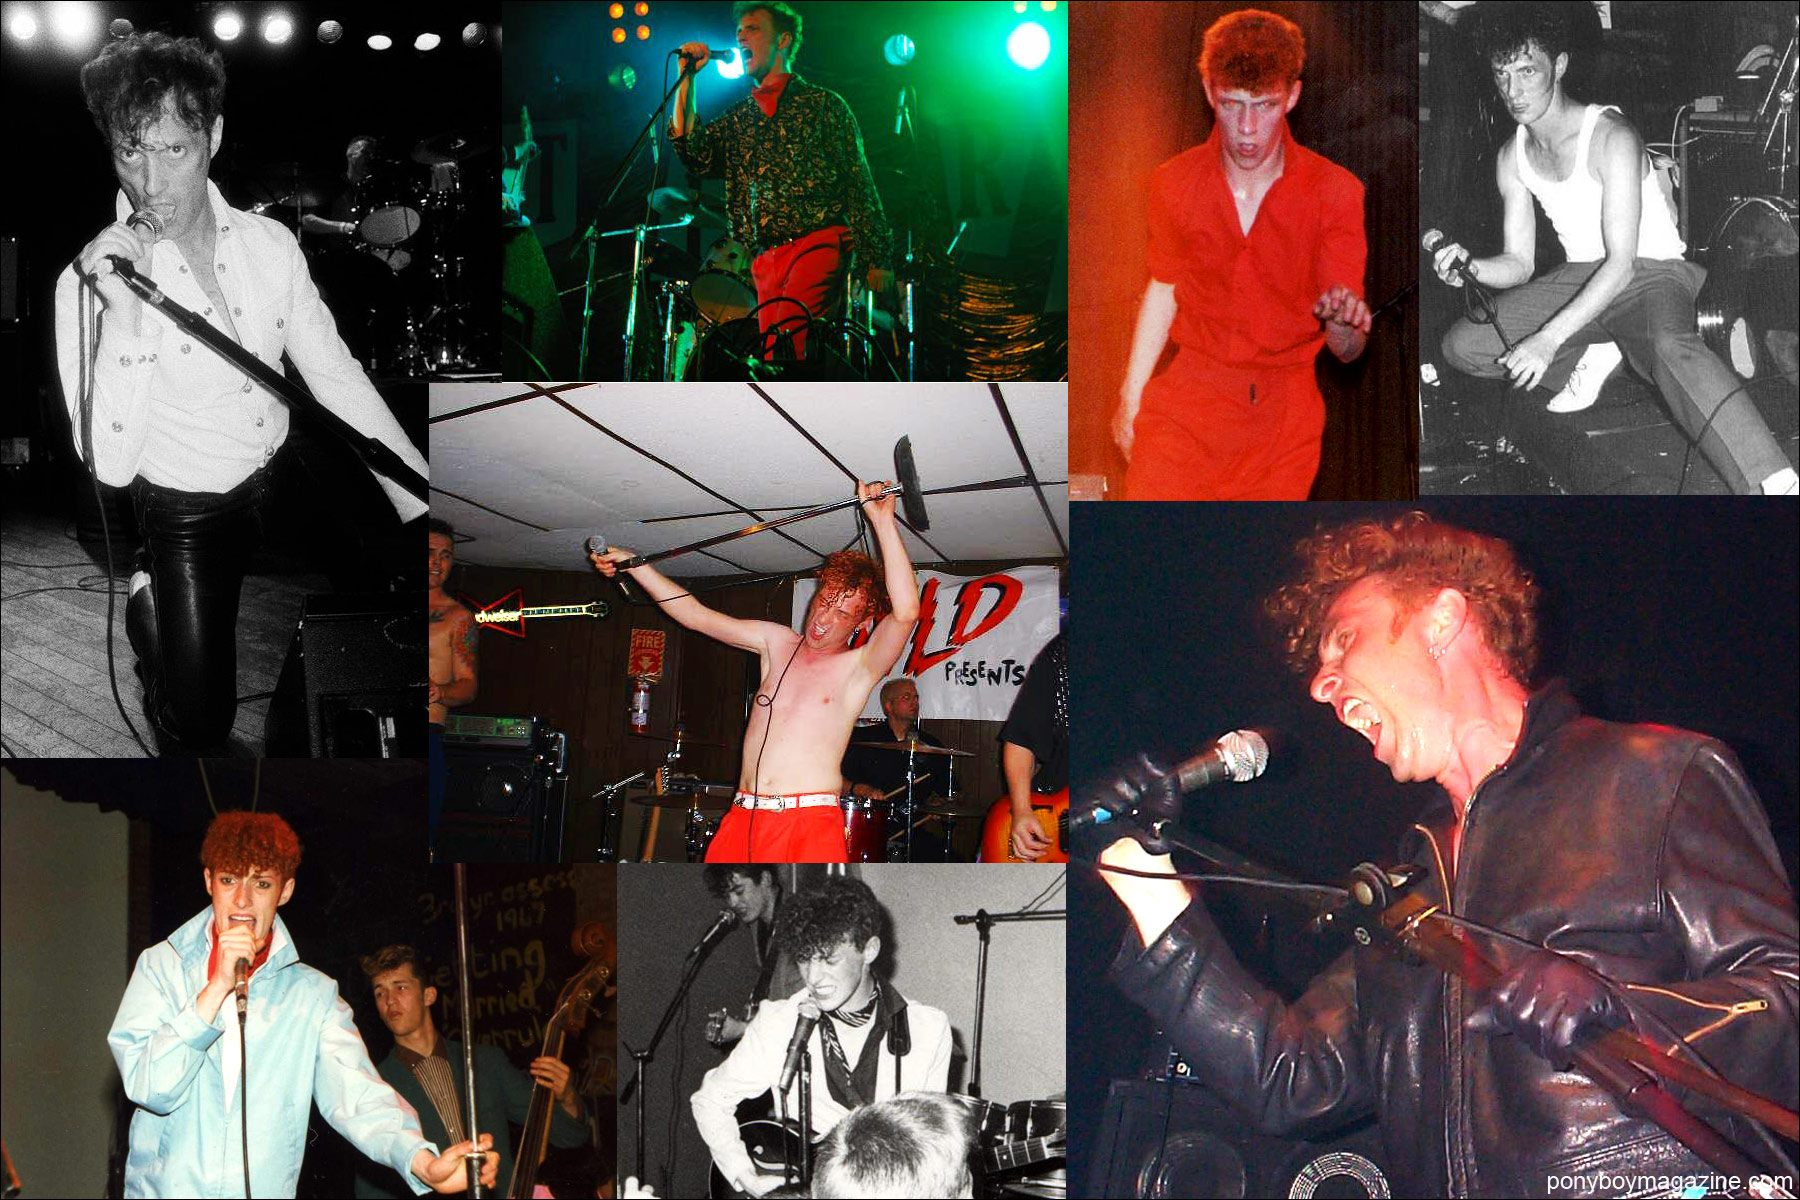 Assorted live shots of rockabilly singer Tim Polecat, from Polecats fame. Ponyboy Magazine in NY.